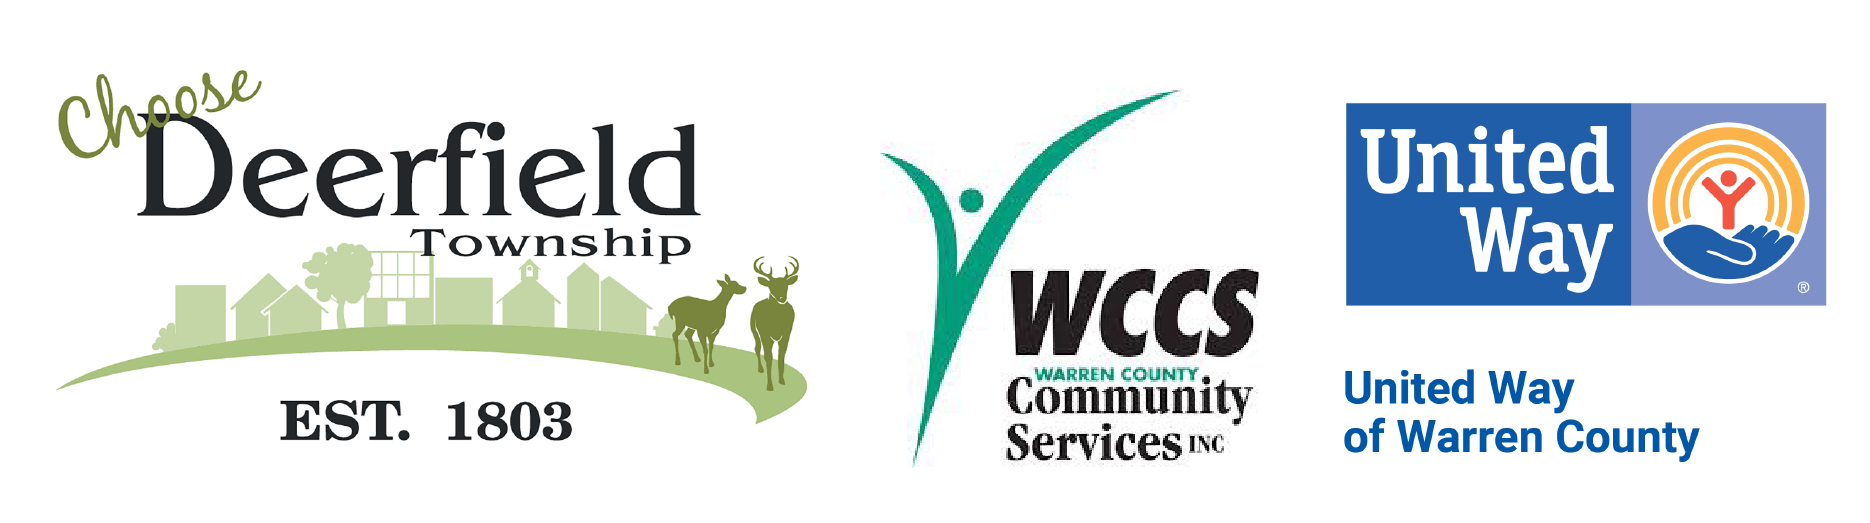 Logos for Deerfield Township, Warren County Community Services, and Warren County United Way